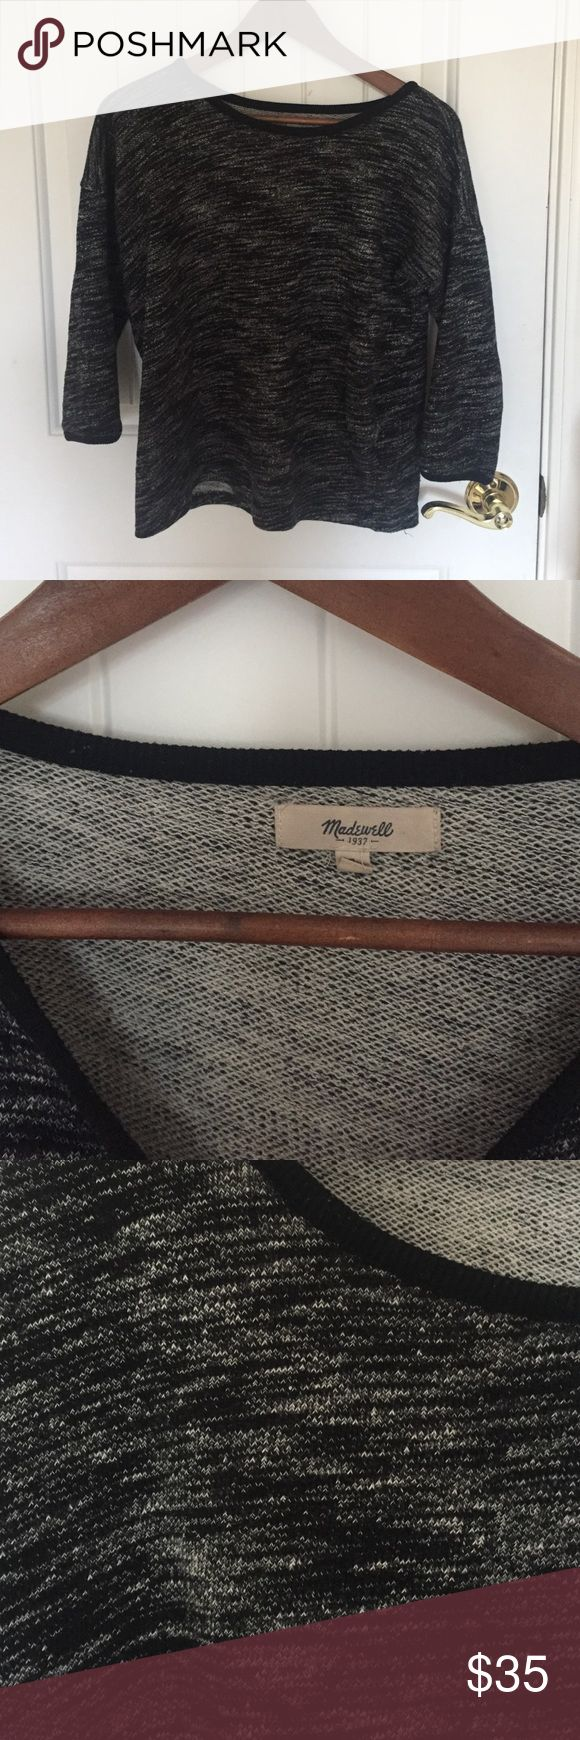 Madewell Marled Sweater Madewell grey and black marled sweater. 3/4 sleeves. Madewell Sweaters